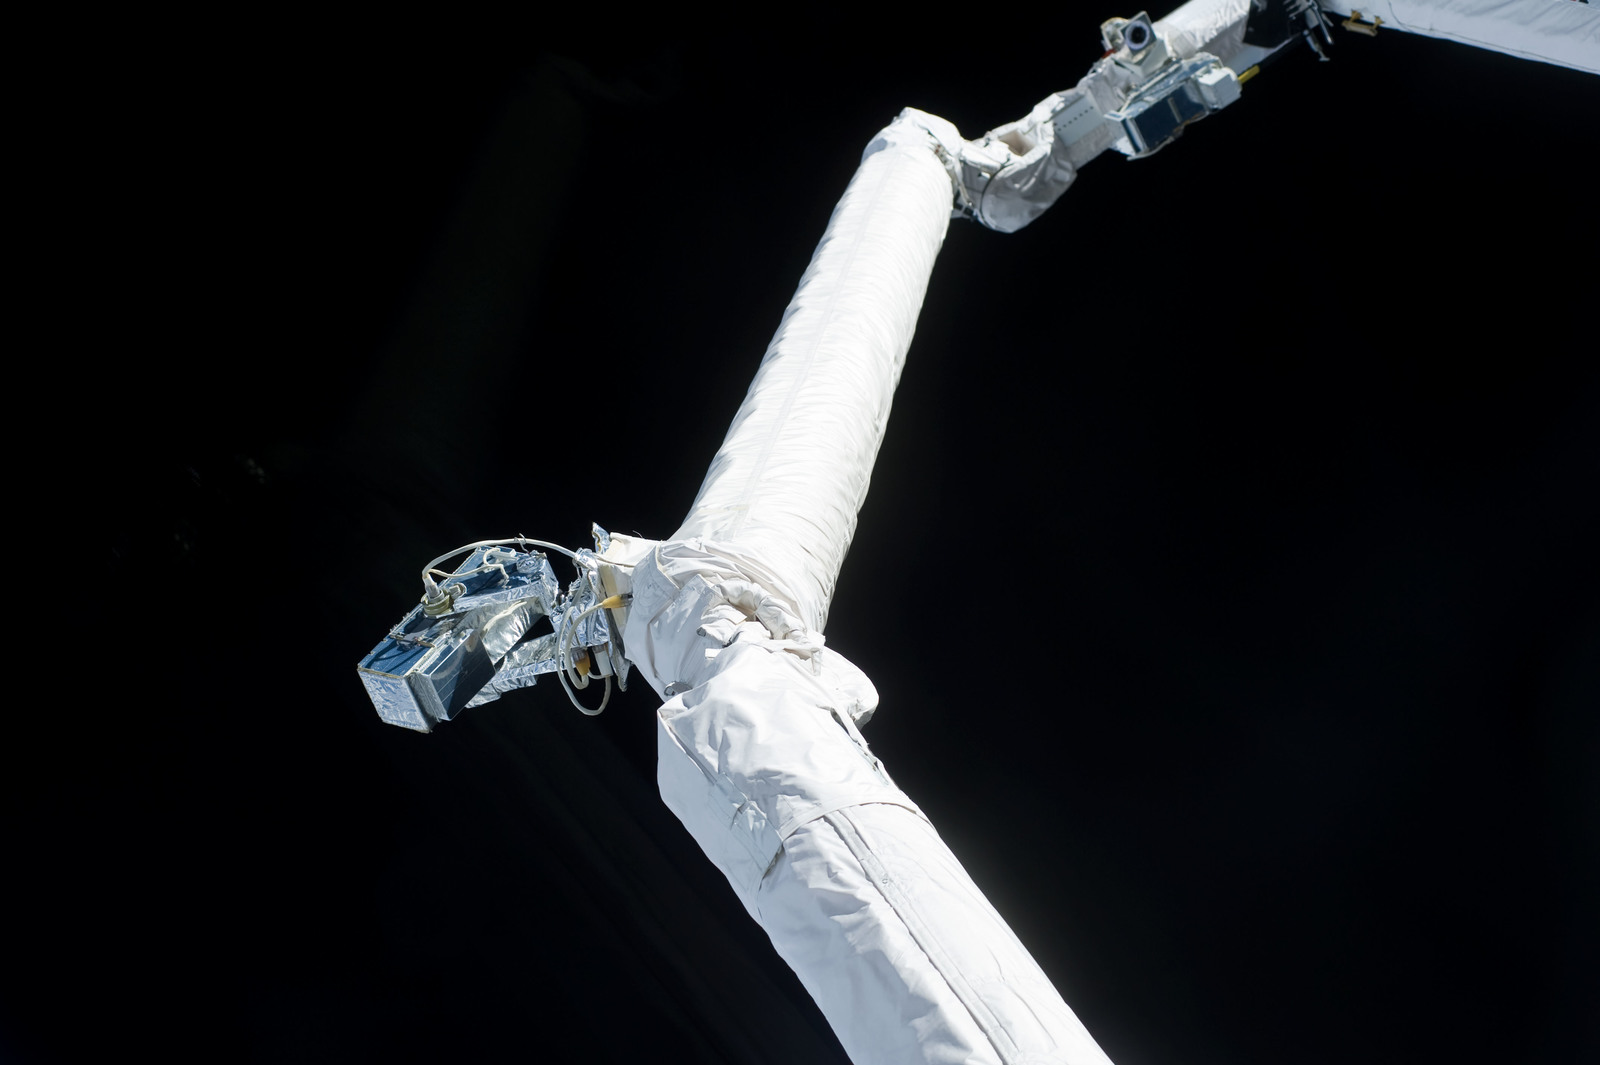 s133E006259 - STS-133 - View of camera on RMS arm